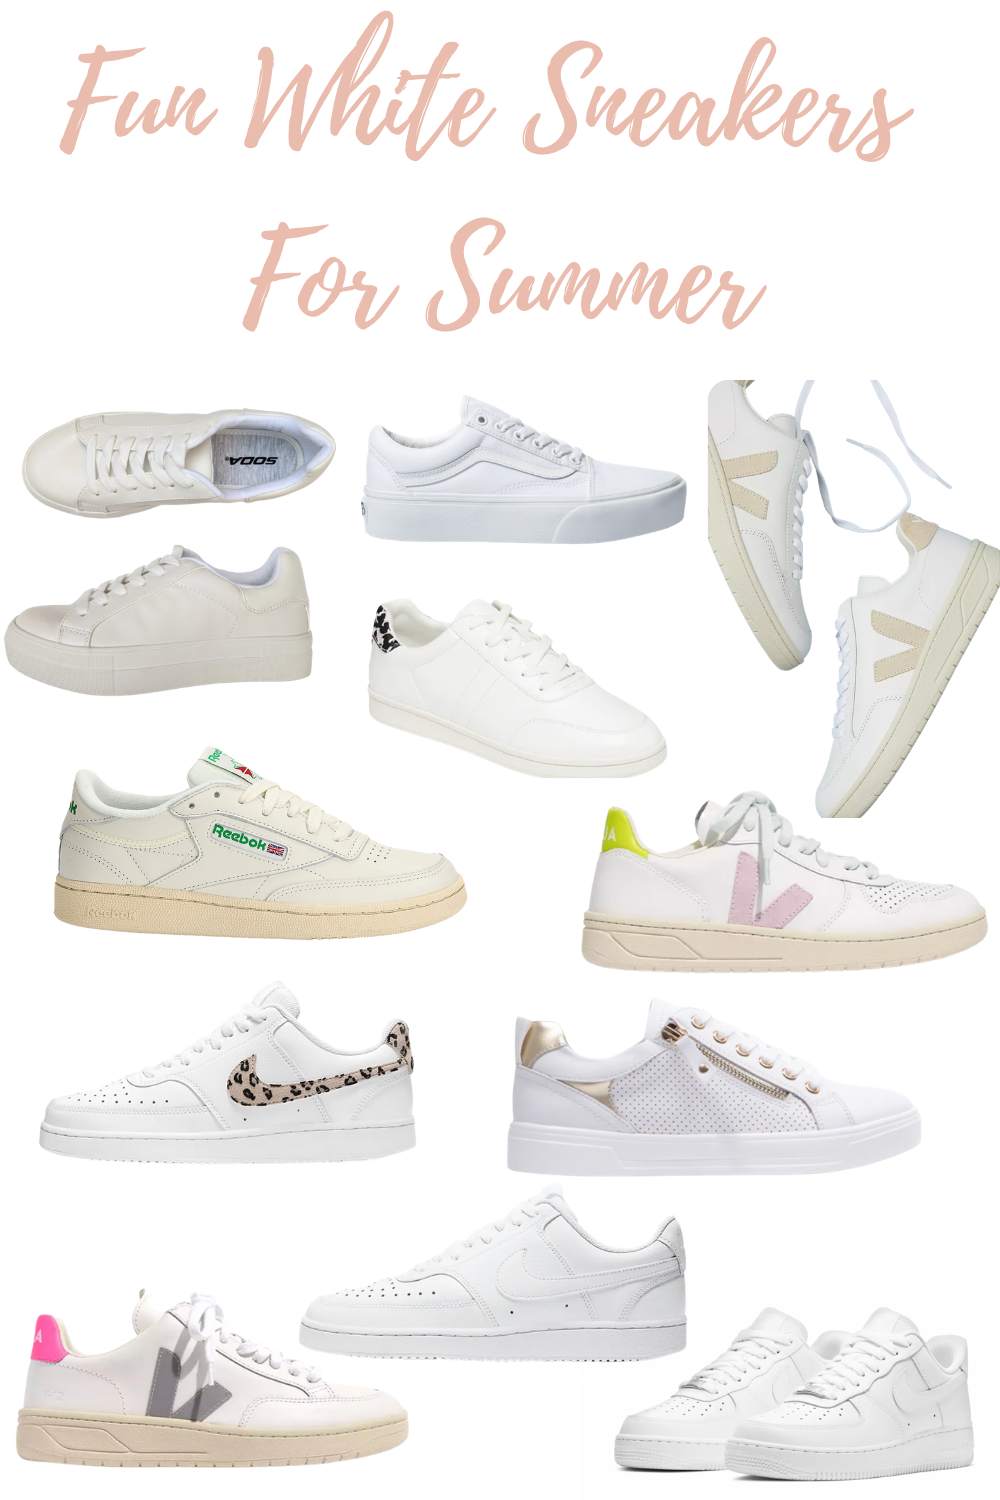 fun white sneakers for summer-5